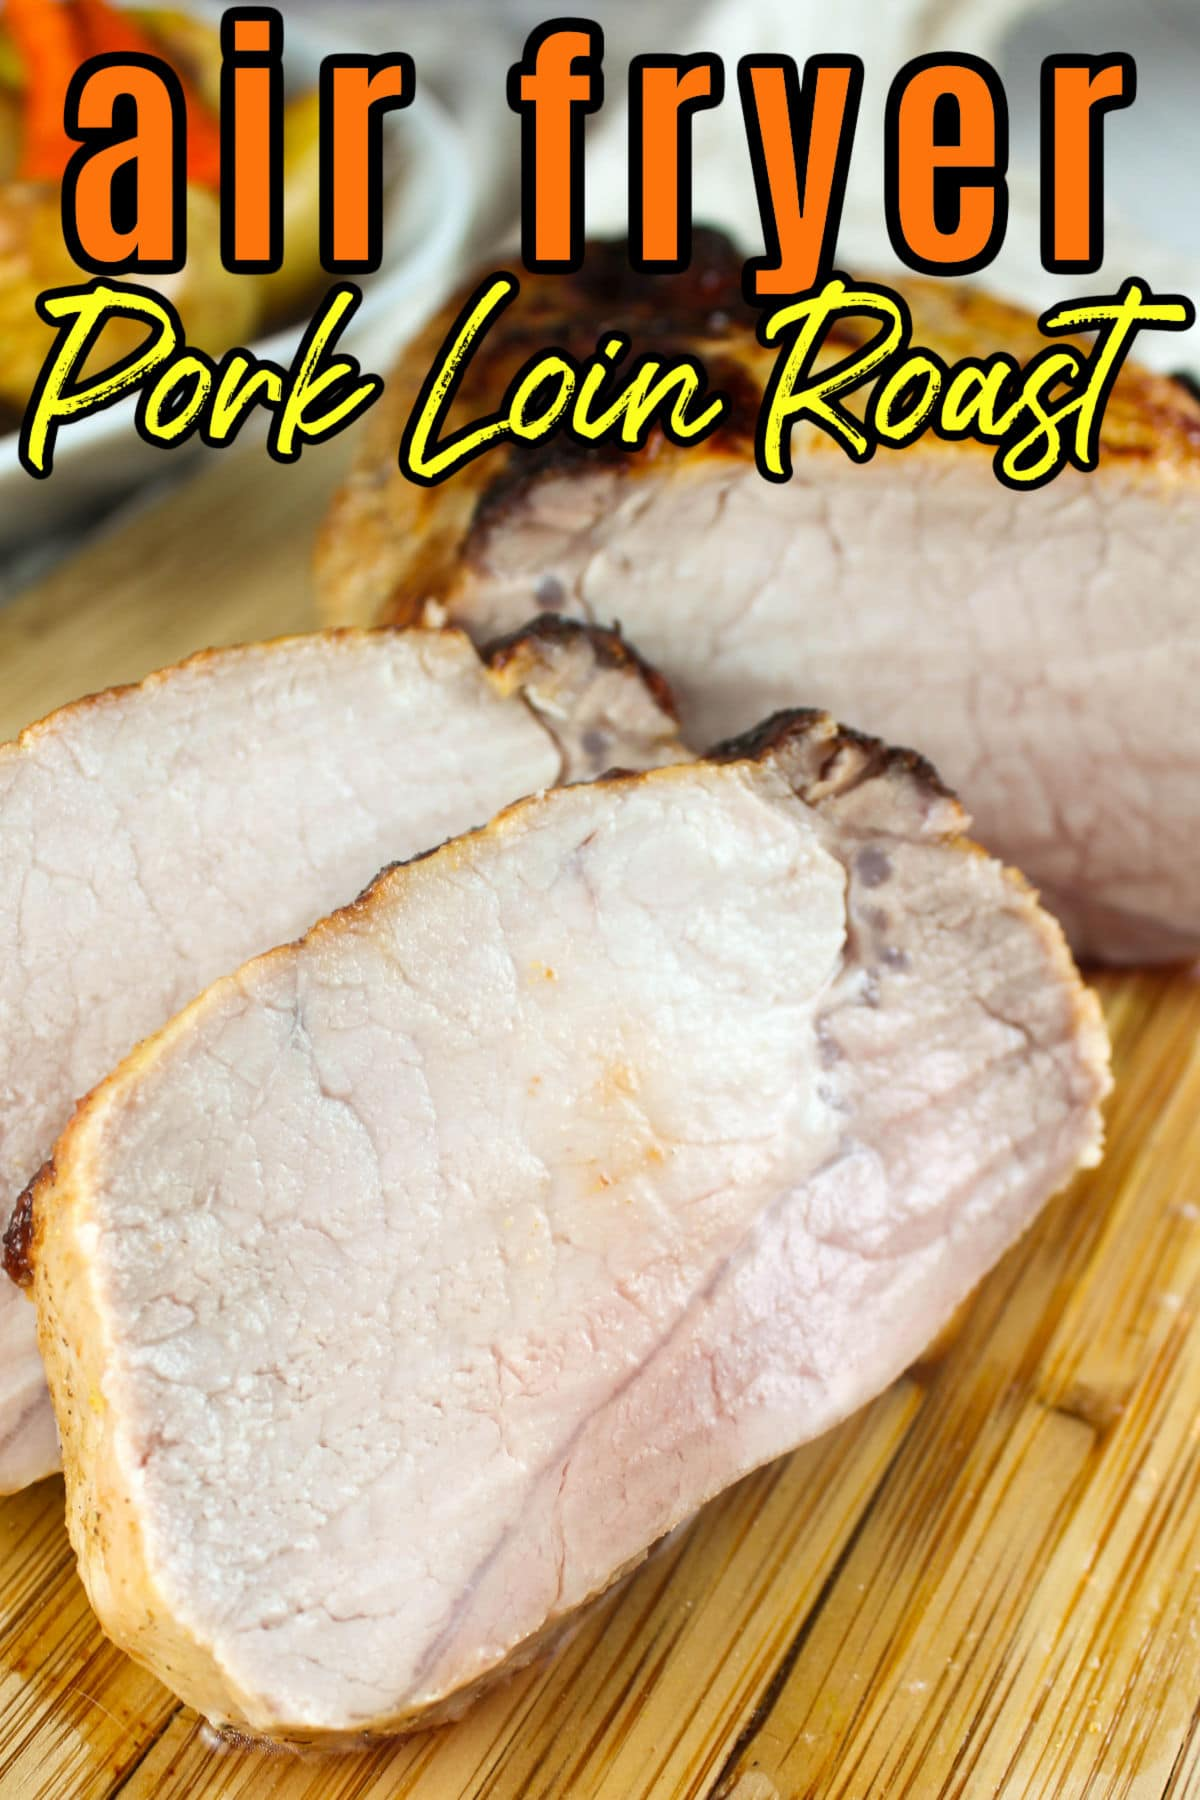 An Air Fryer Pork Roast is delicious and will make some of the juiciest boneless chops you've ever eaten. It's very simple too - just marinate and air fry! Throw in some potatoes and carrots and you've got the whole meal in 40 minutes.  via @foodhussy